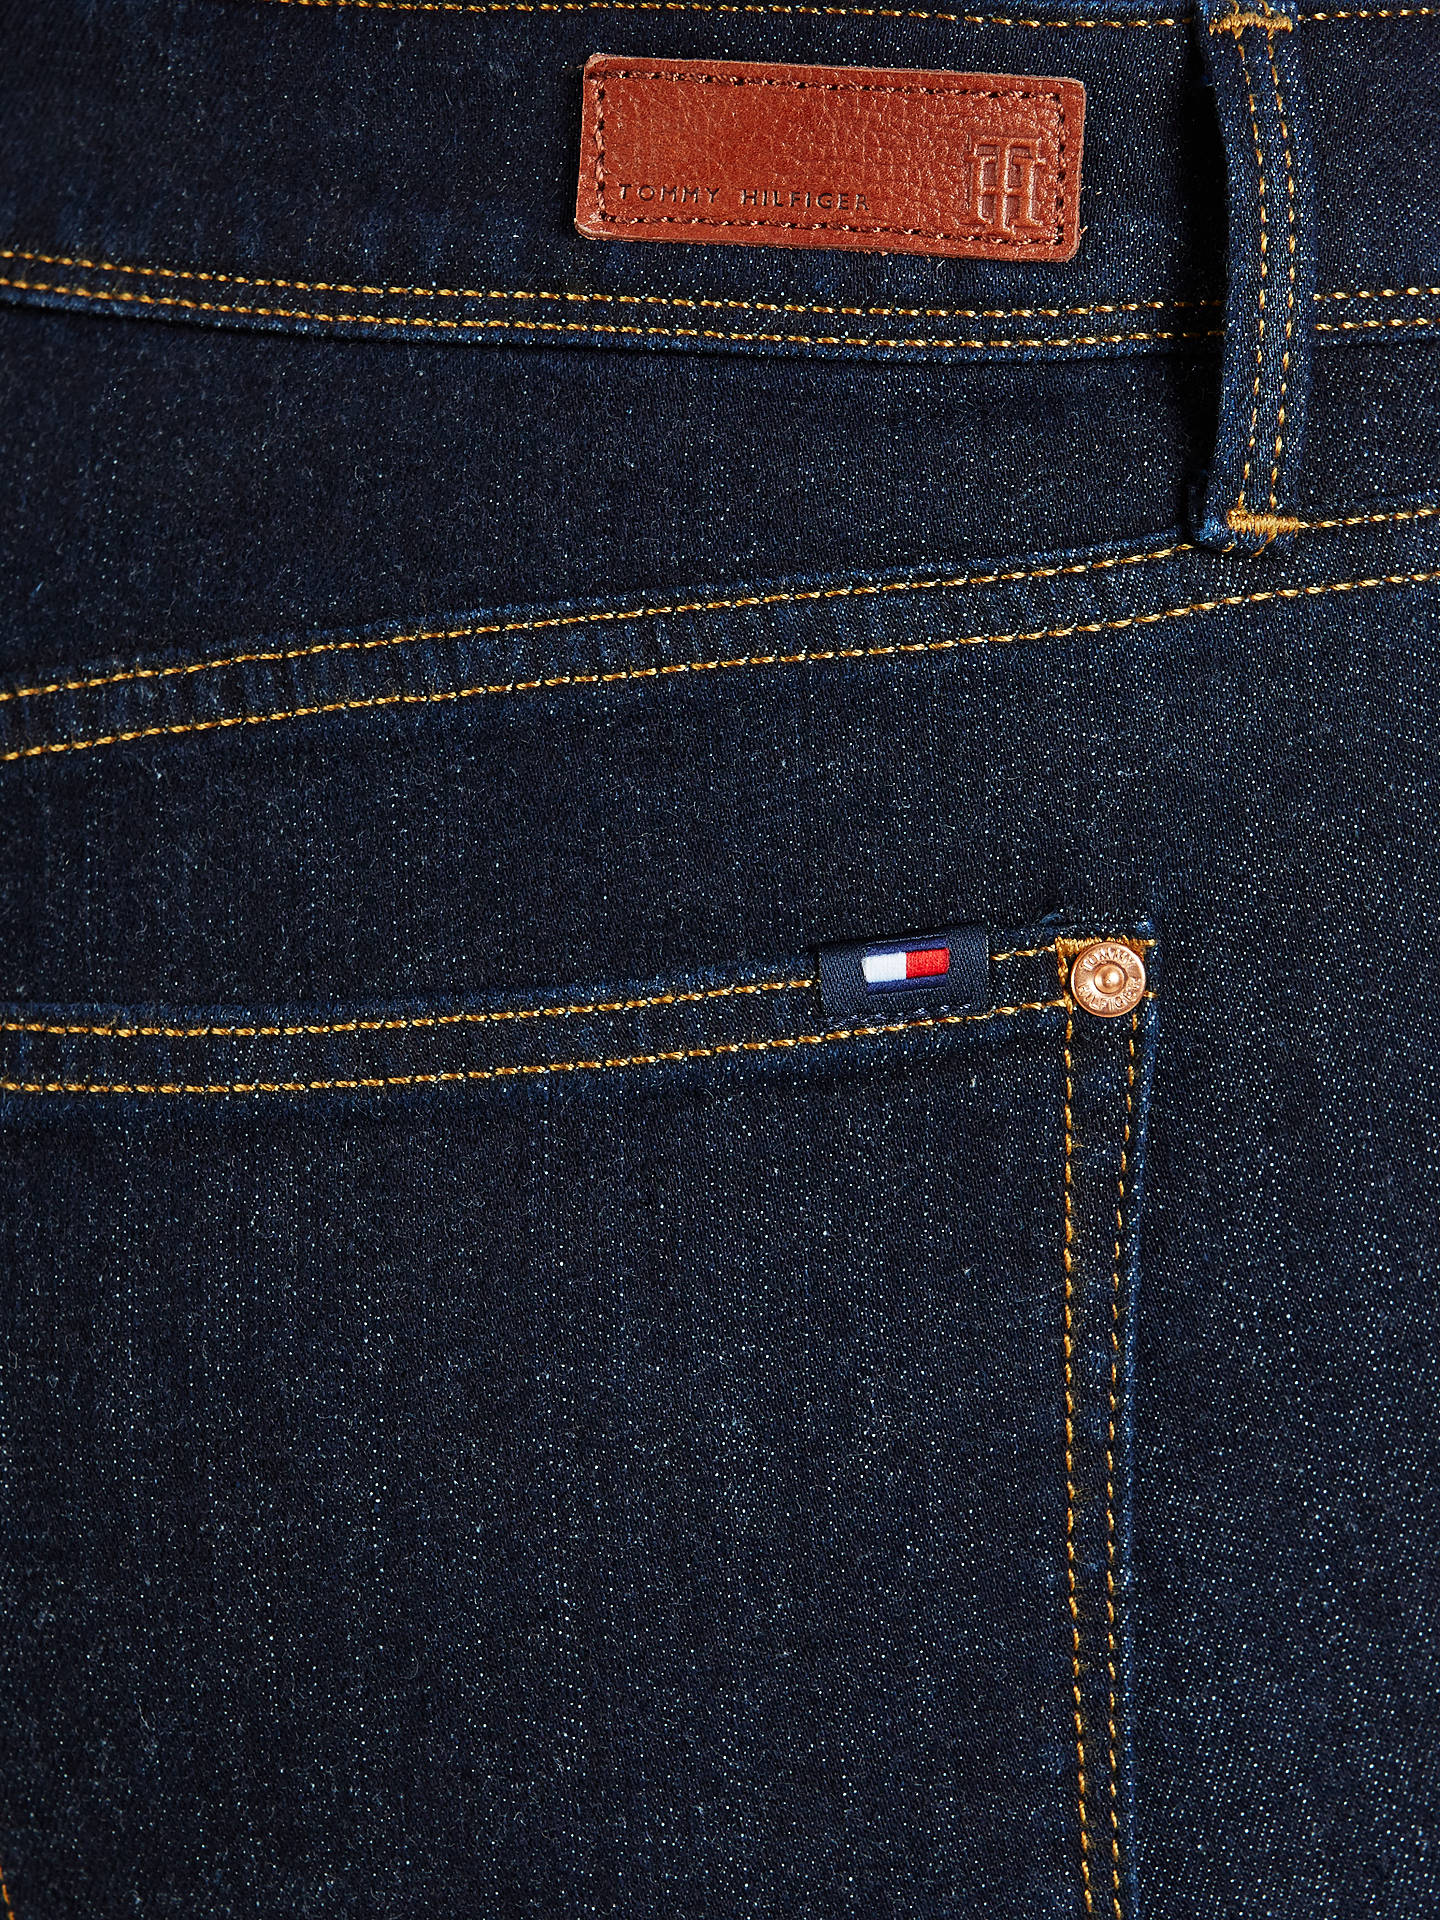 872423e05 Buy Tommy Hilfiger Paris Slim Jeans, Chrissy, W29/L32 Online at johnlewis.